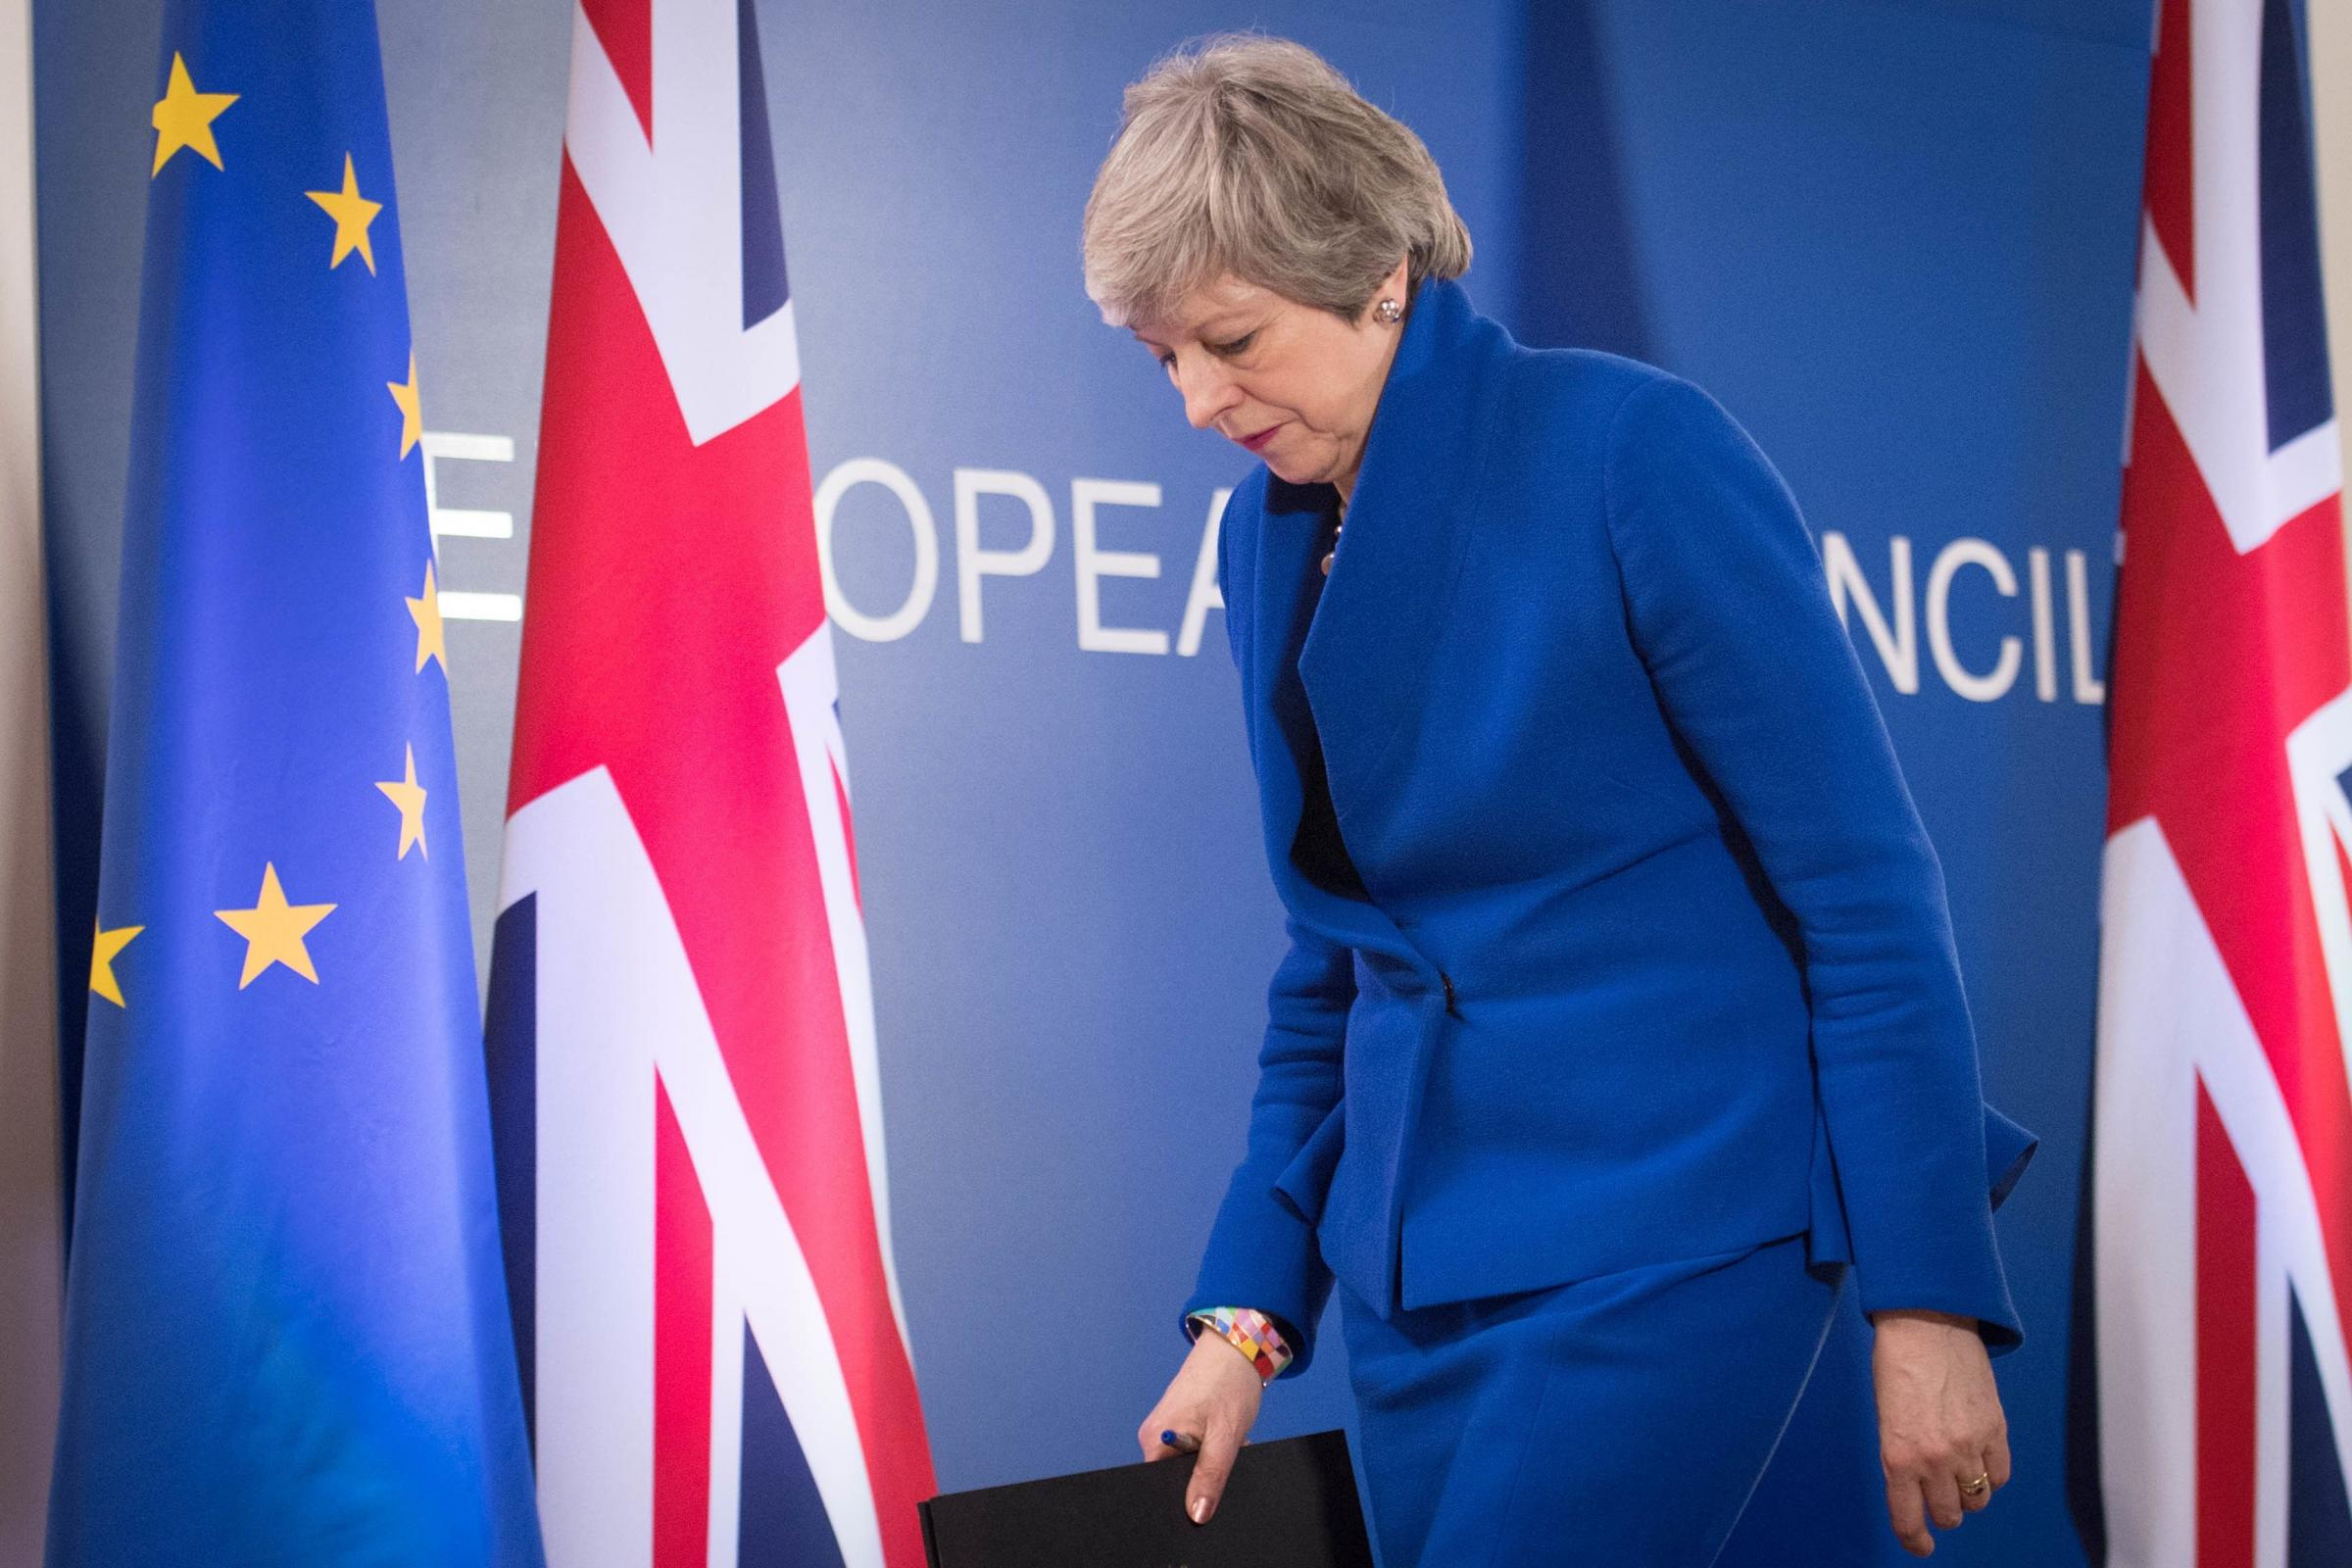 DELAY: Prime Minister Theresa May holds a news conference after the European Council in Brussels